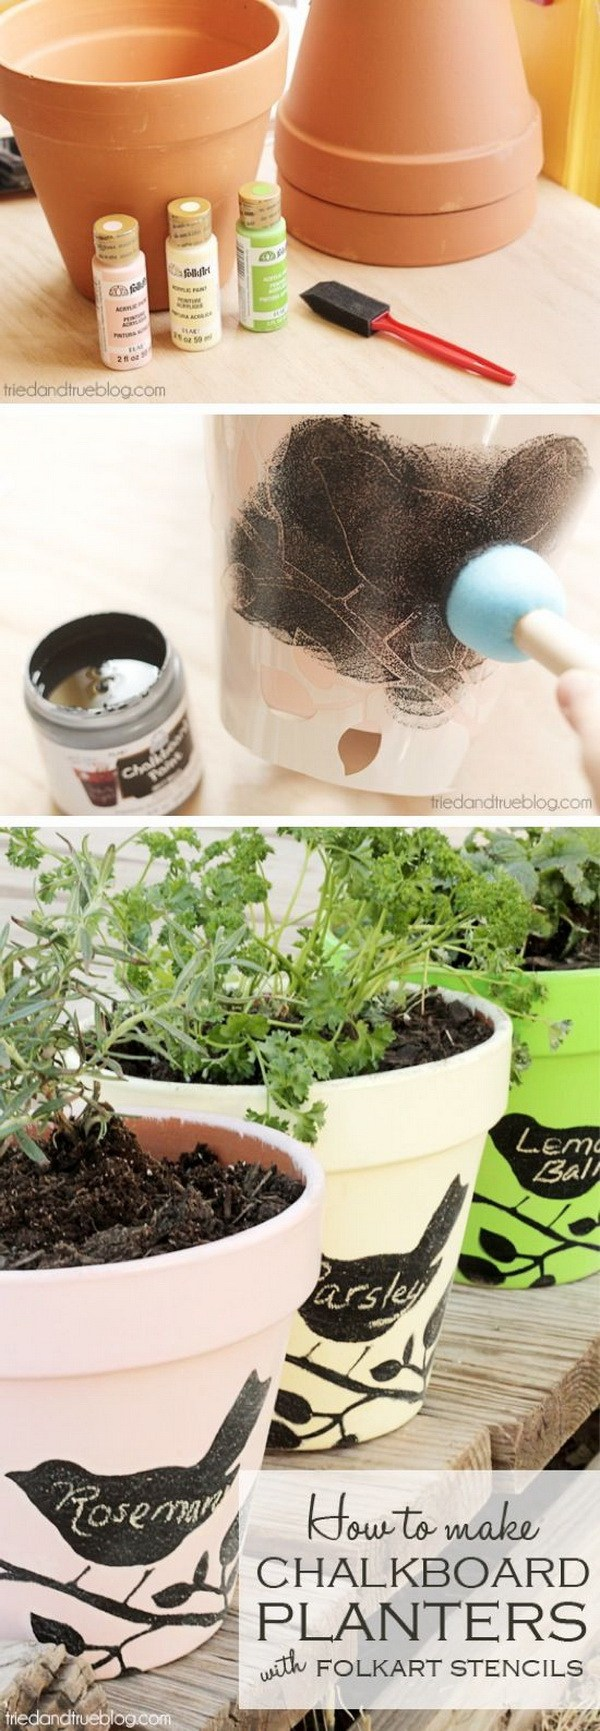 13-diy-ideas-to-decorate-with-terracotta-pots